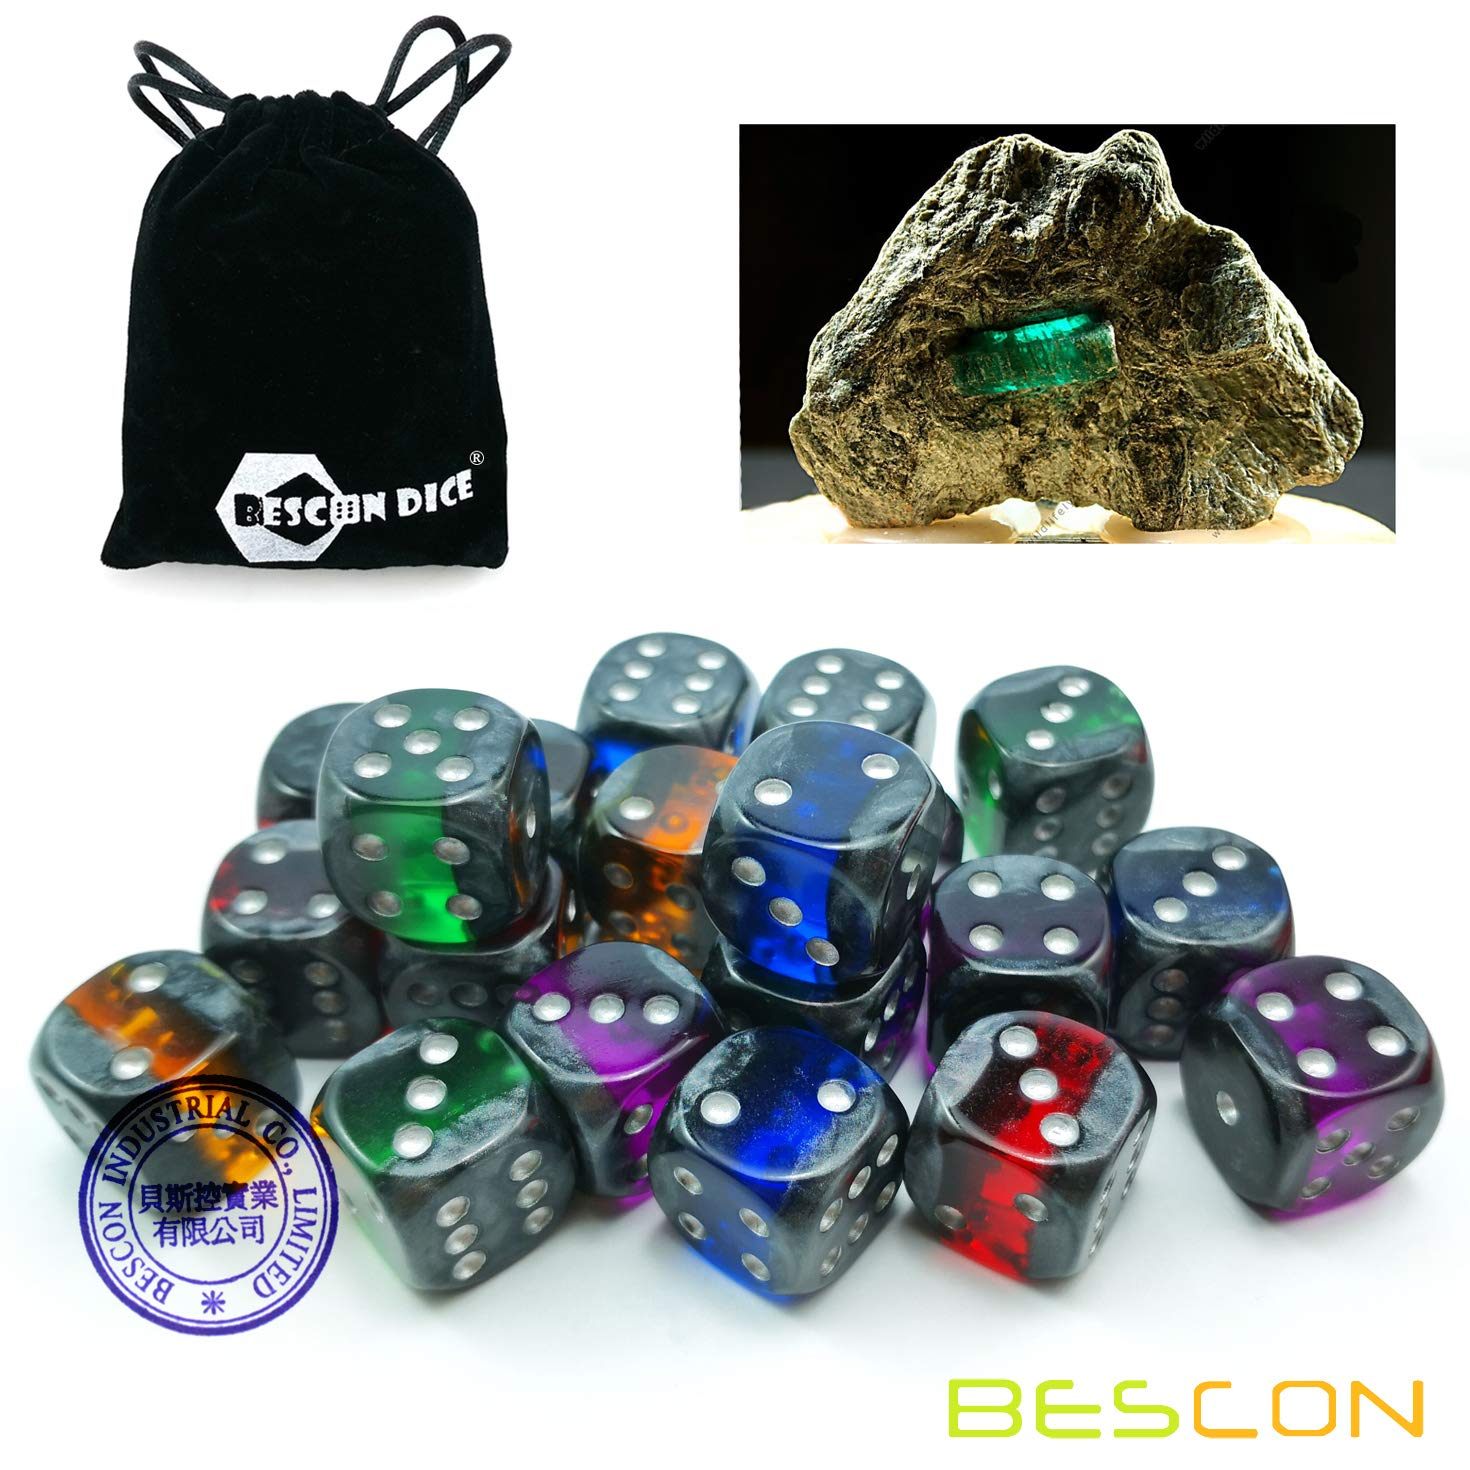 Bescon Mineral Rocks GEM Vines 6 Sides 16MM Dice Set 20 Pack, 5/8